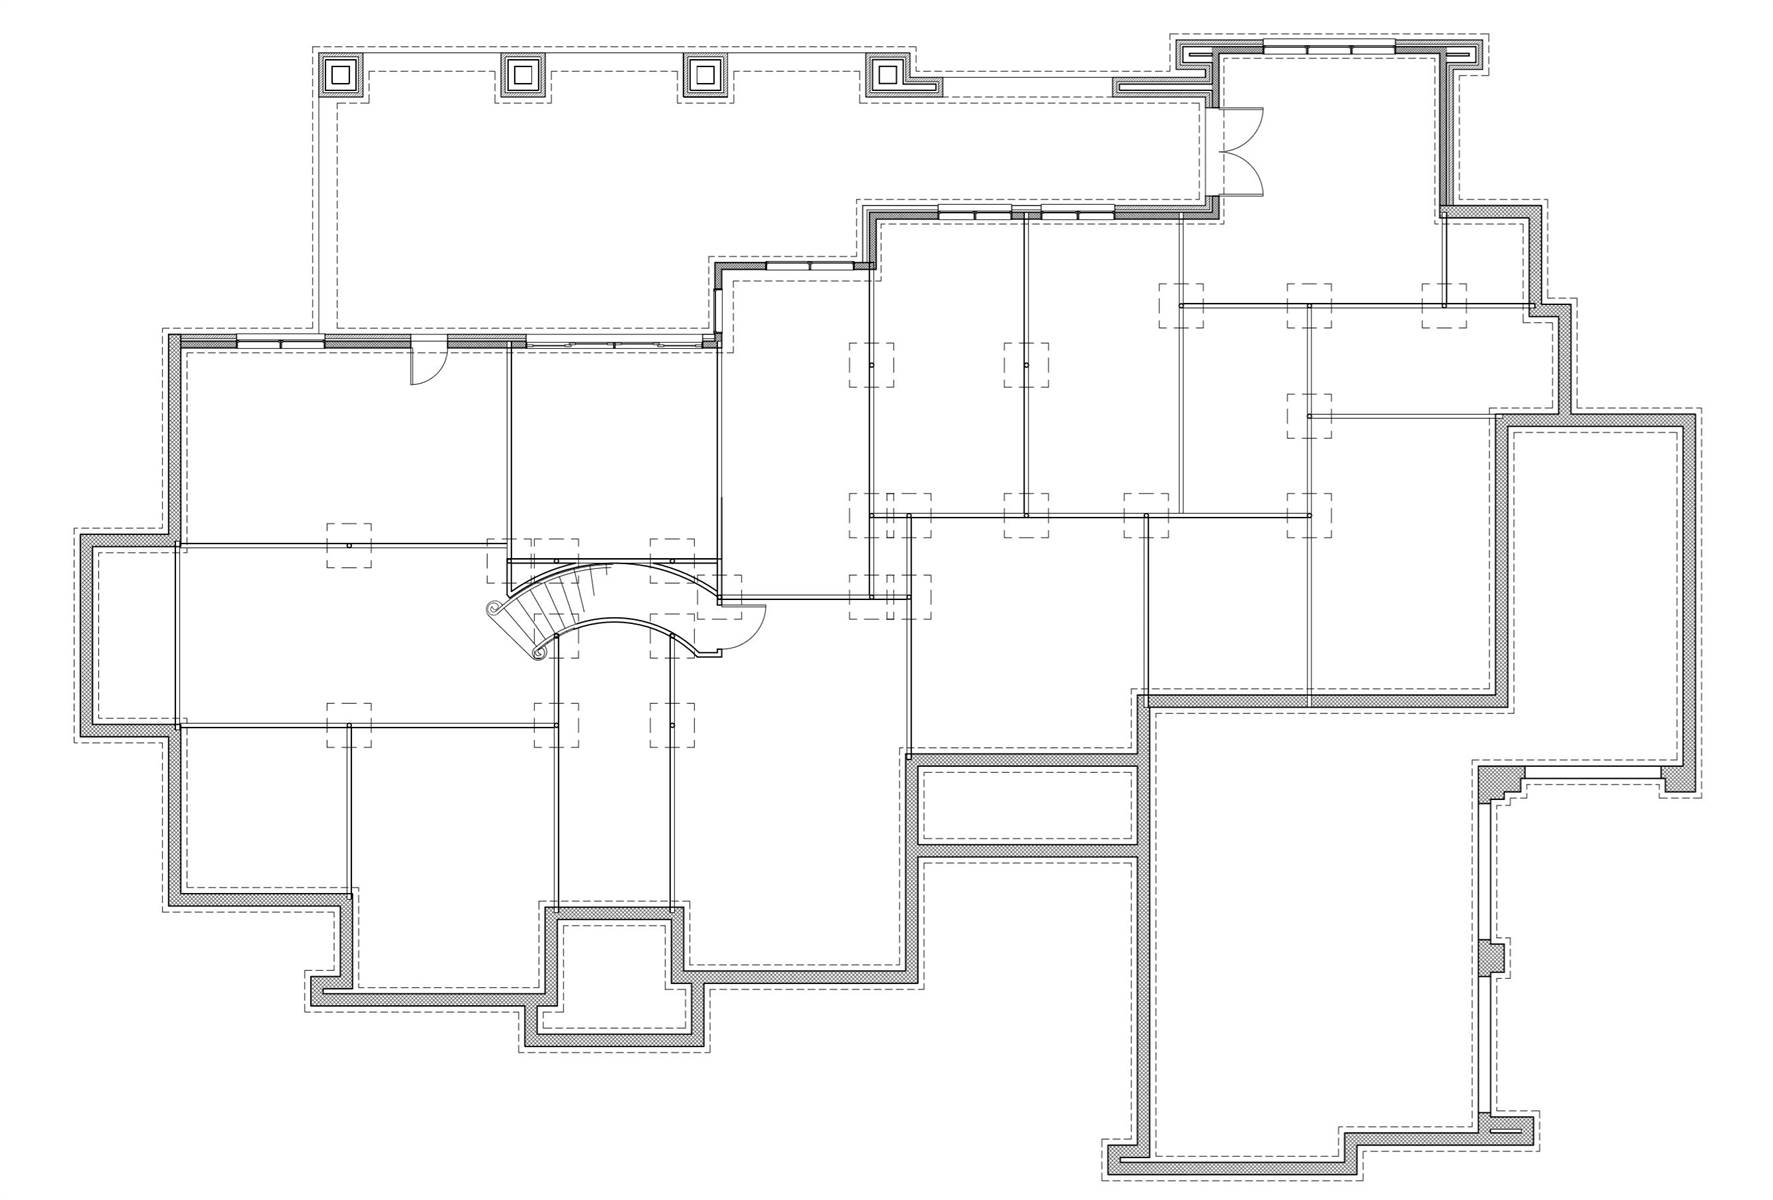 Basement Floor Plan image of Featured House Plan: BHG - 9658